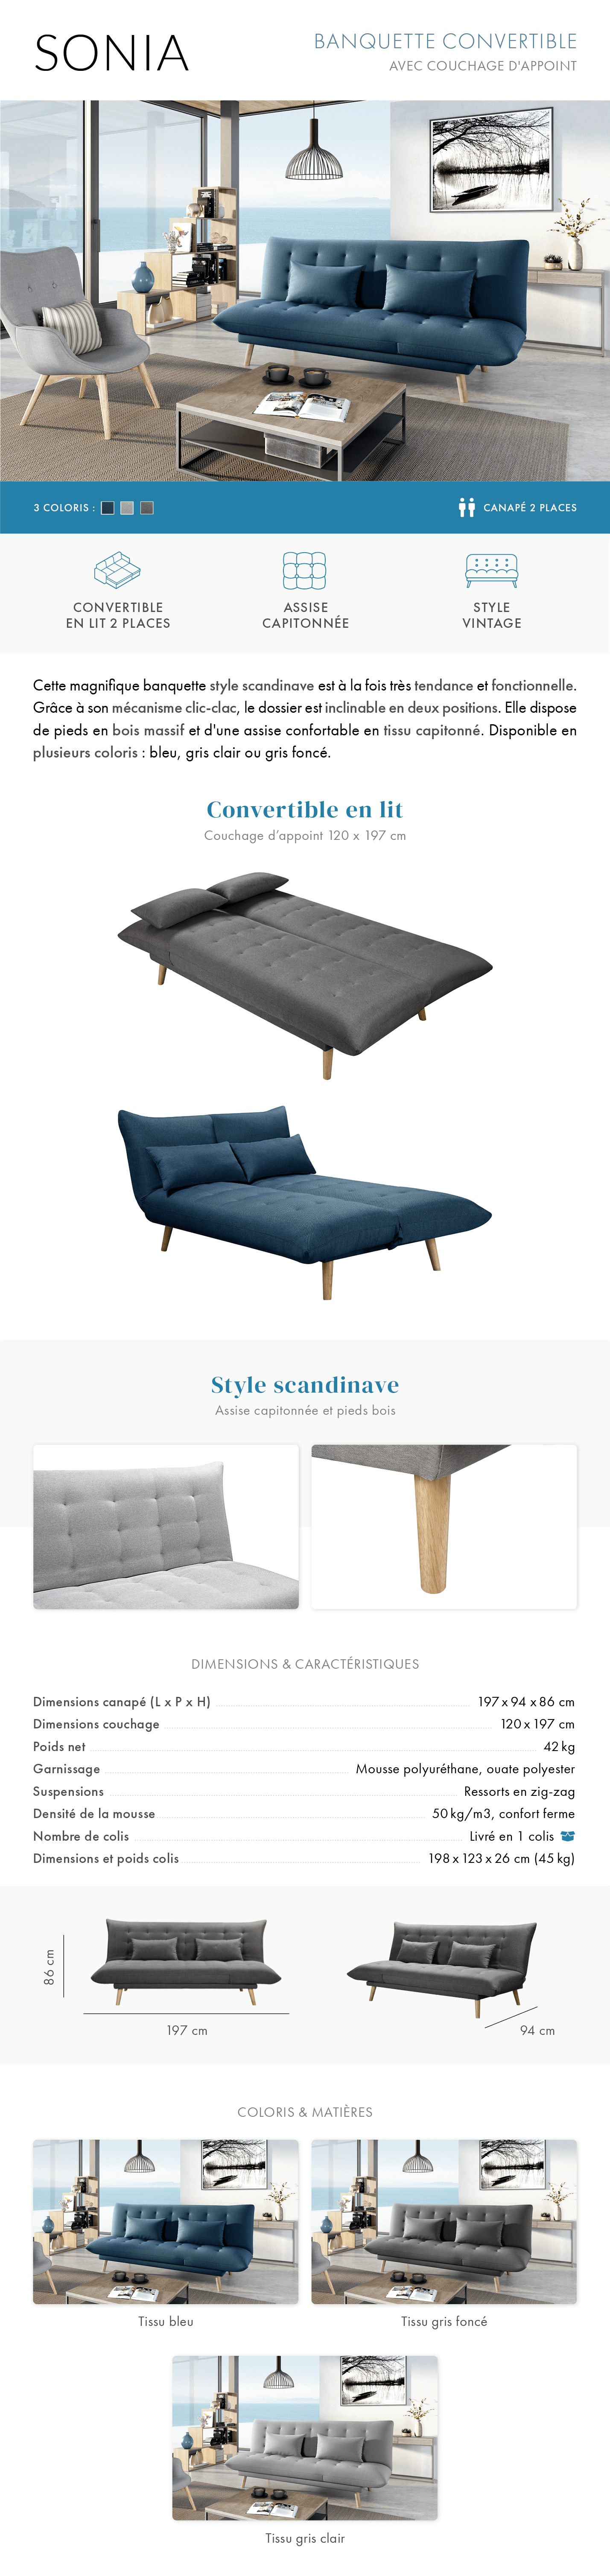 Banquette convertible scandinave sonia